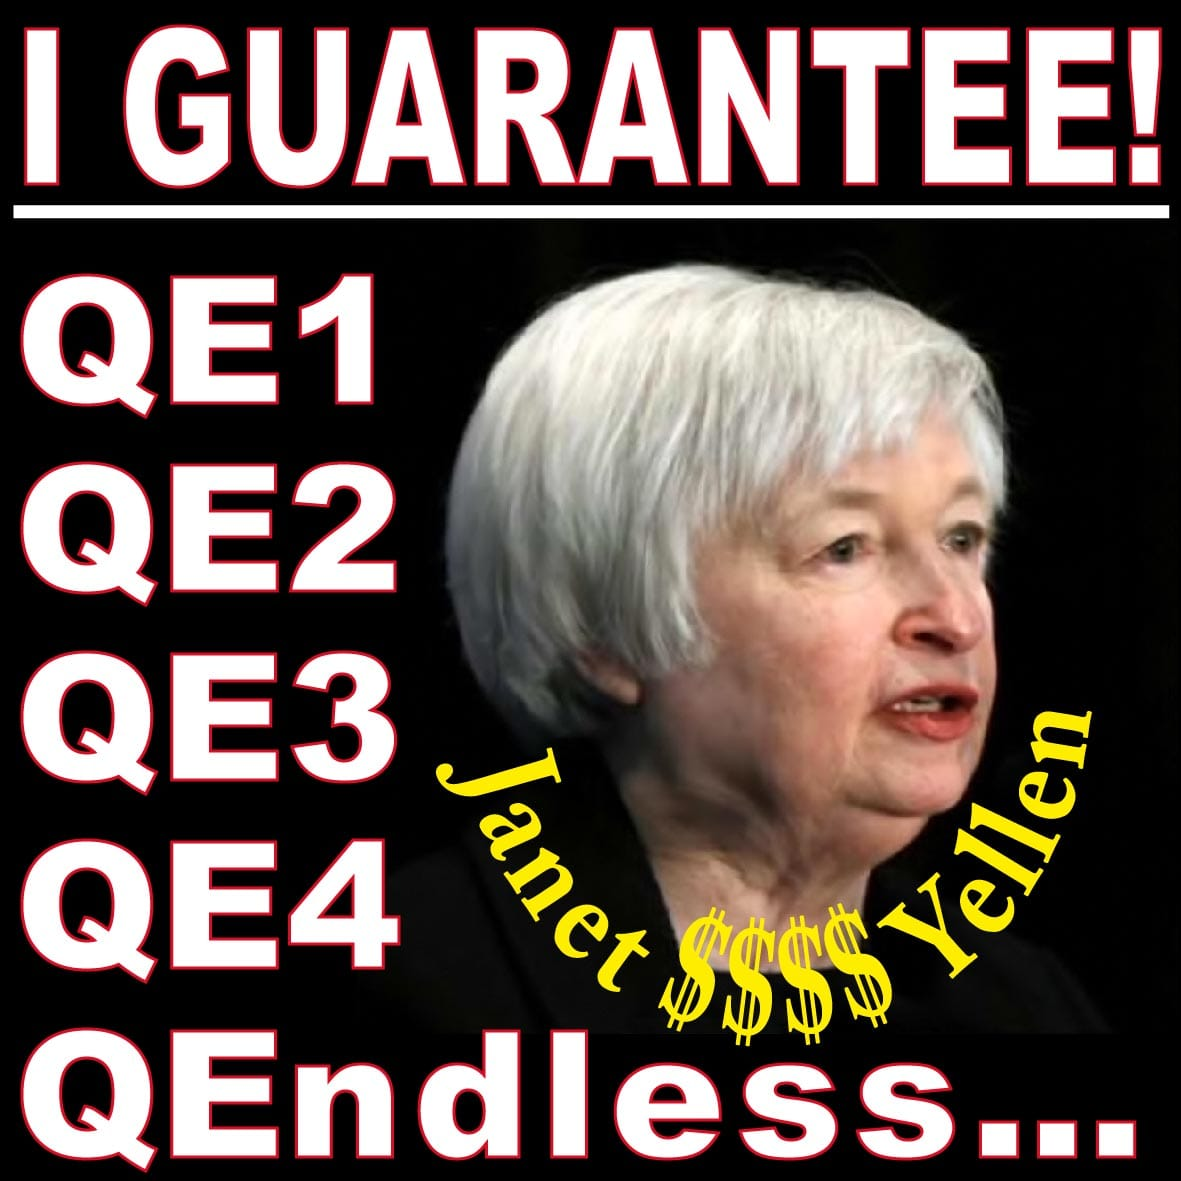 Obamas Mädel an der Druckerpresse, QE1-QE2-QE3-QEndless Yellen, Janet-new Governor chief Chairman of the federal reserve board fed in 2014